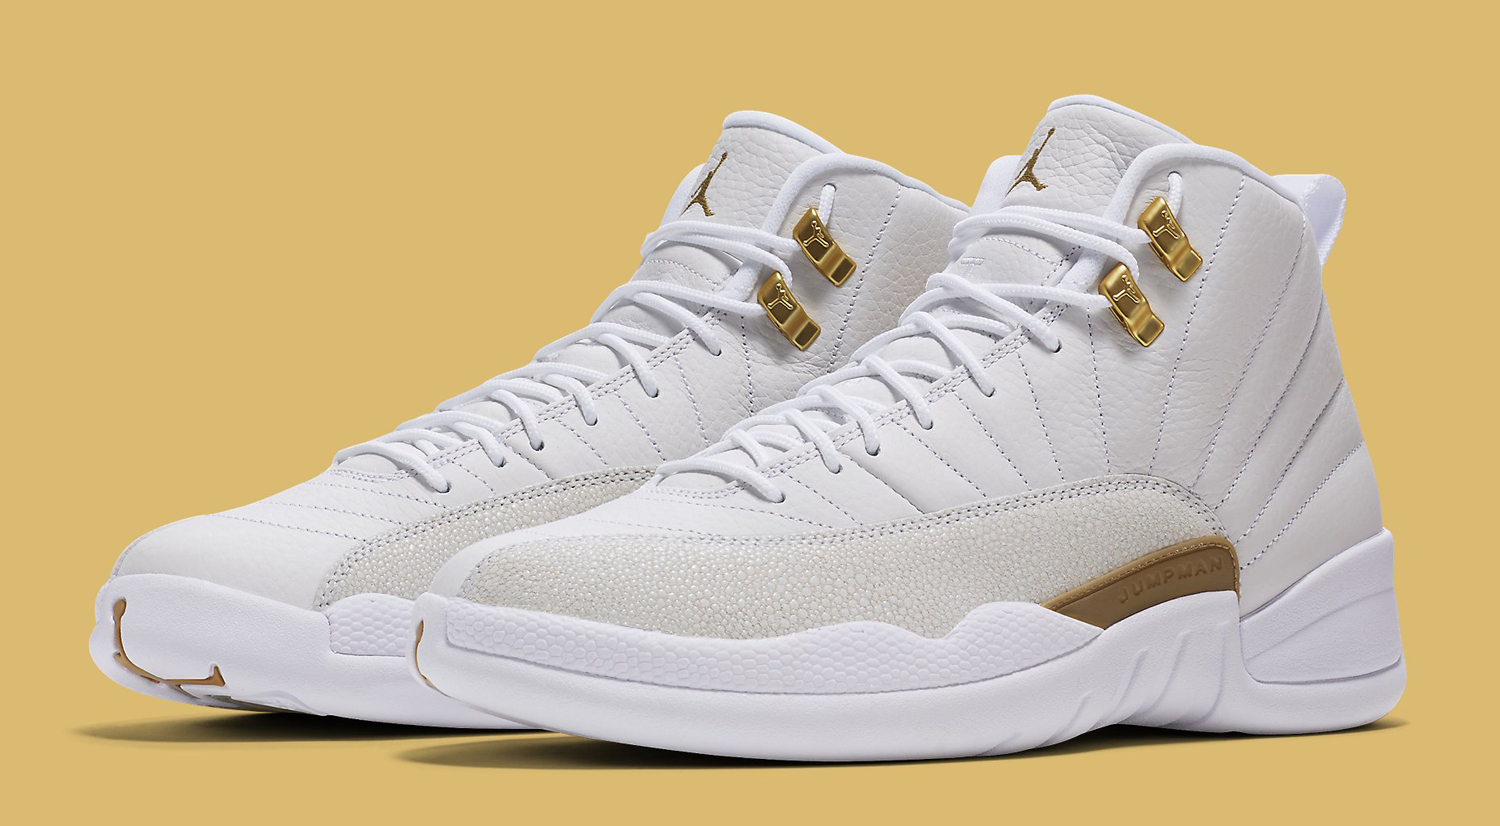 Air Jordan 12 Ovo Release Date on All White 12s